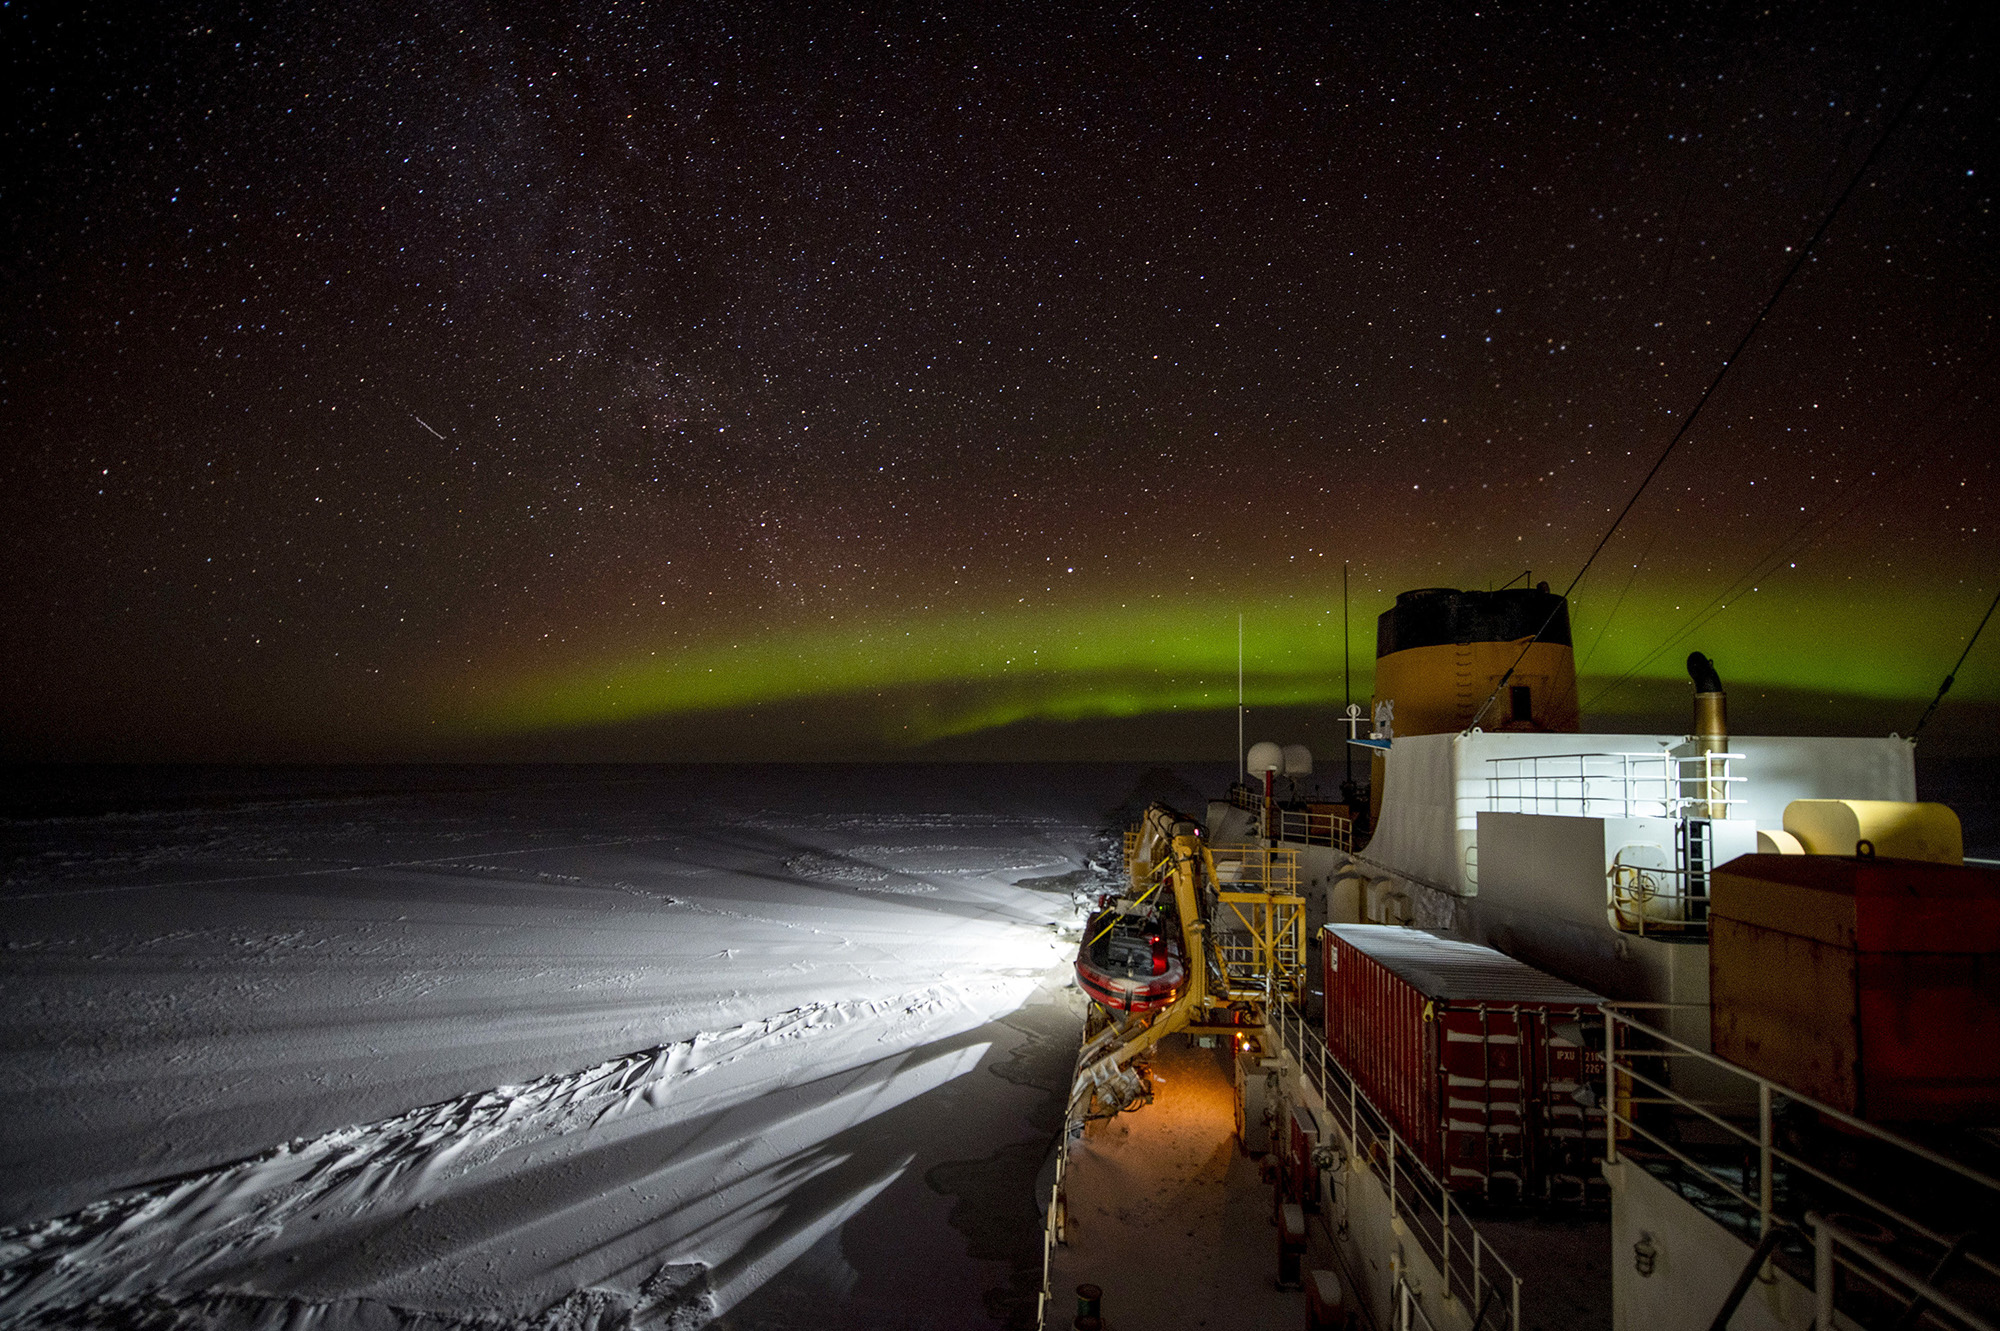 The U.S. Coast Guard cutter Polar Star transits south in the Bering Strait on Jan. 19, 2021. The 45-year-old heavy icebreaker was underway to patrol Alaskan waters into the Arctic, including along the maritime boundary line between the U.S. and Russia. (Petty Officer 1st Class Cynthia Oldham/U.S. Coast Guard)